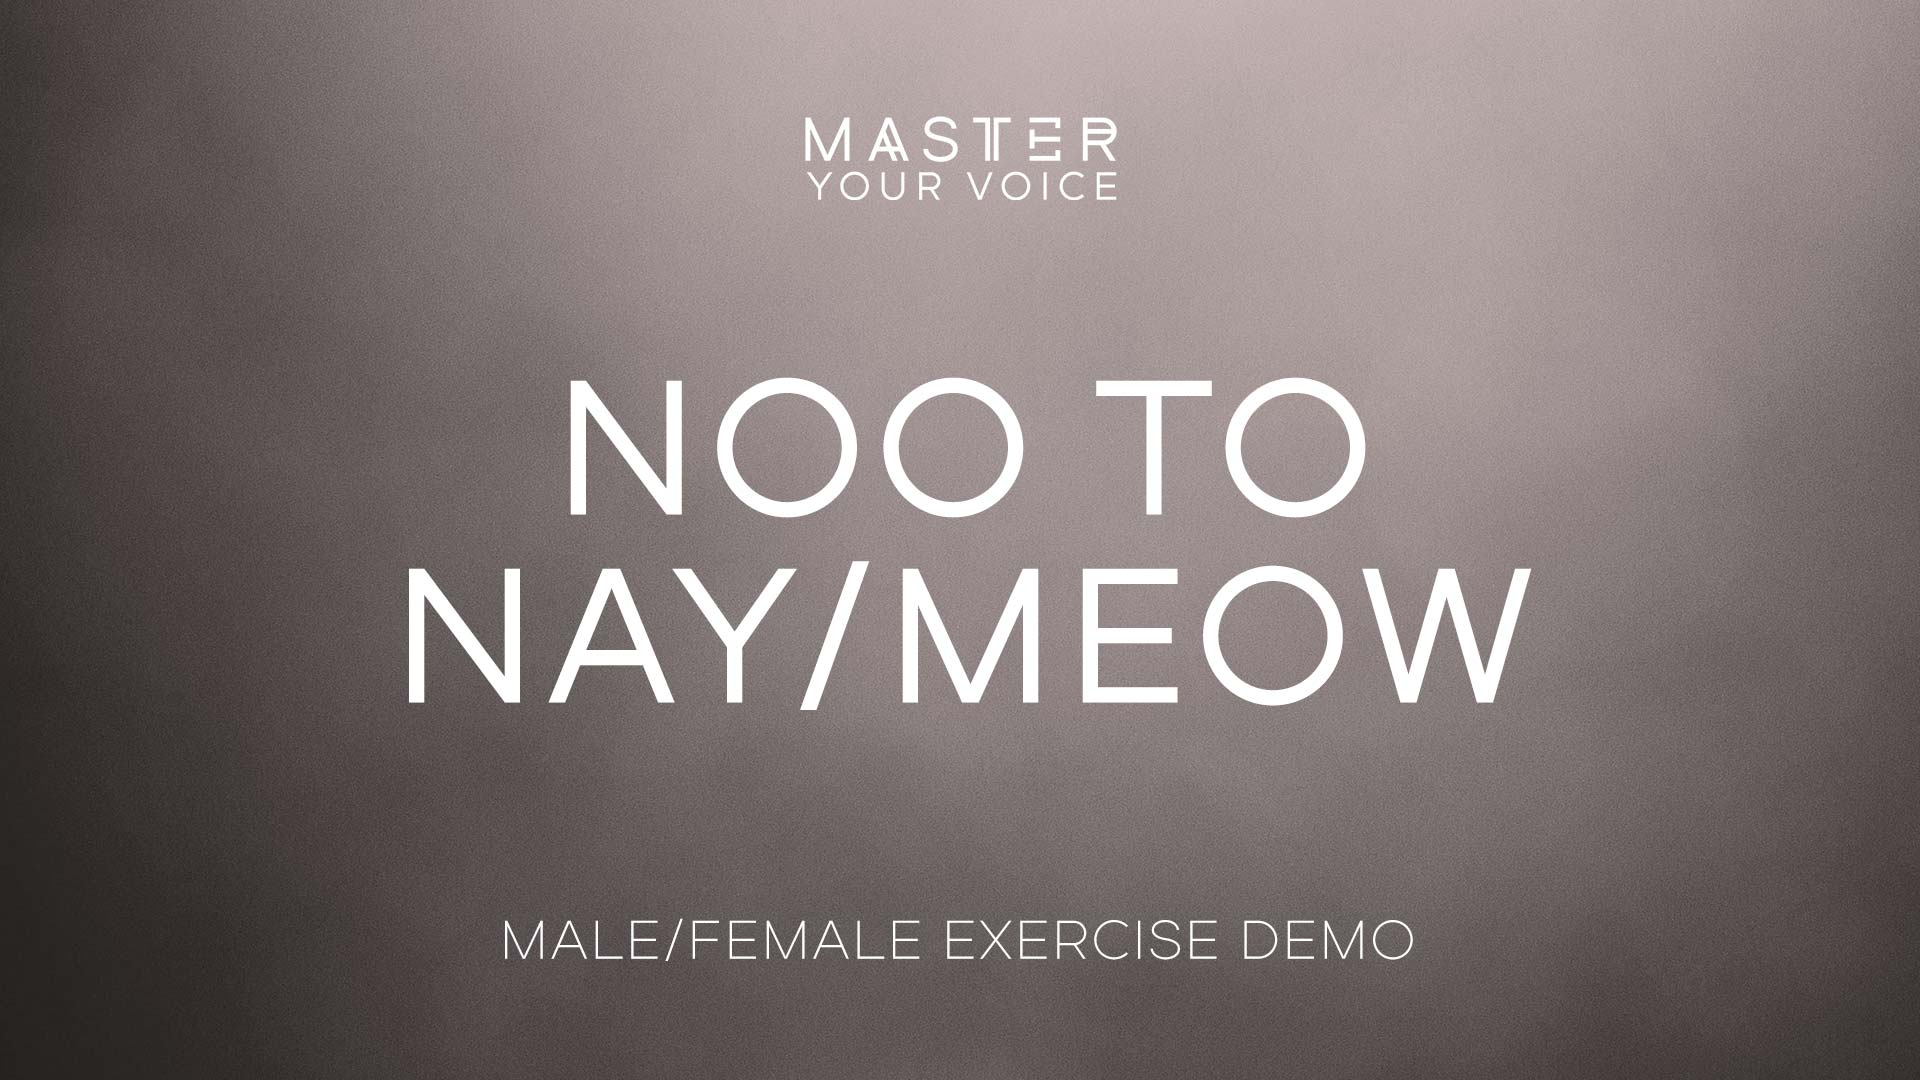 Noo to Nay/Meow Exercise Demo